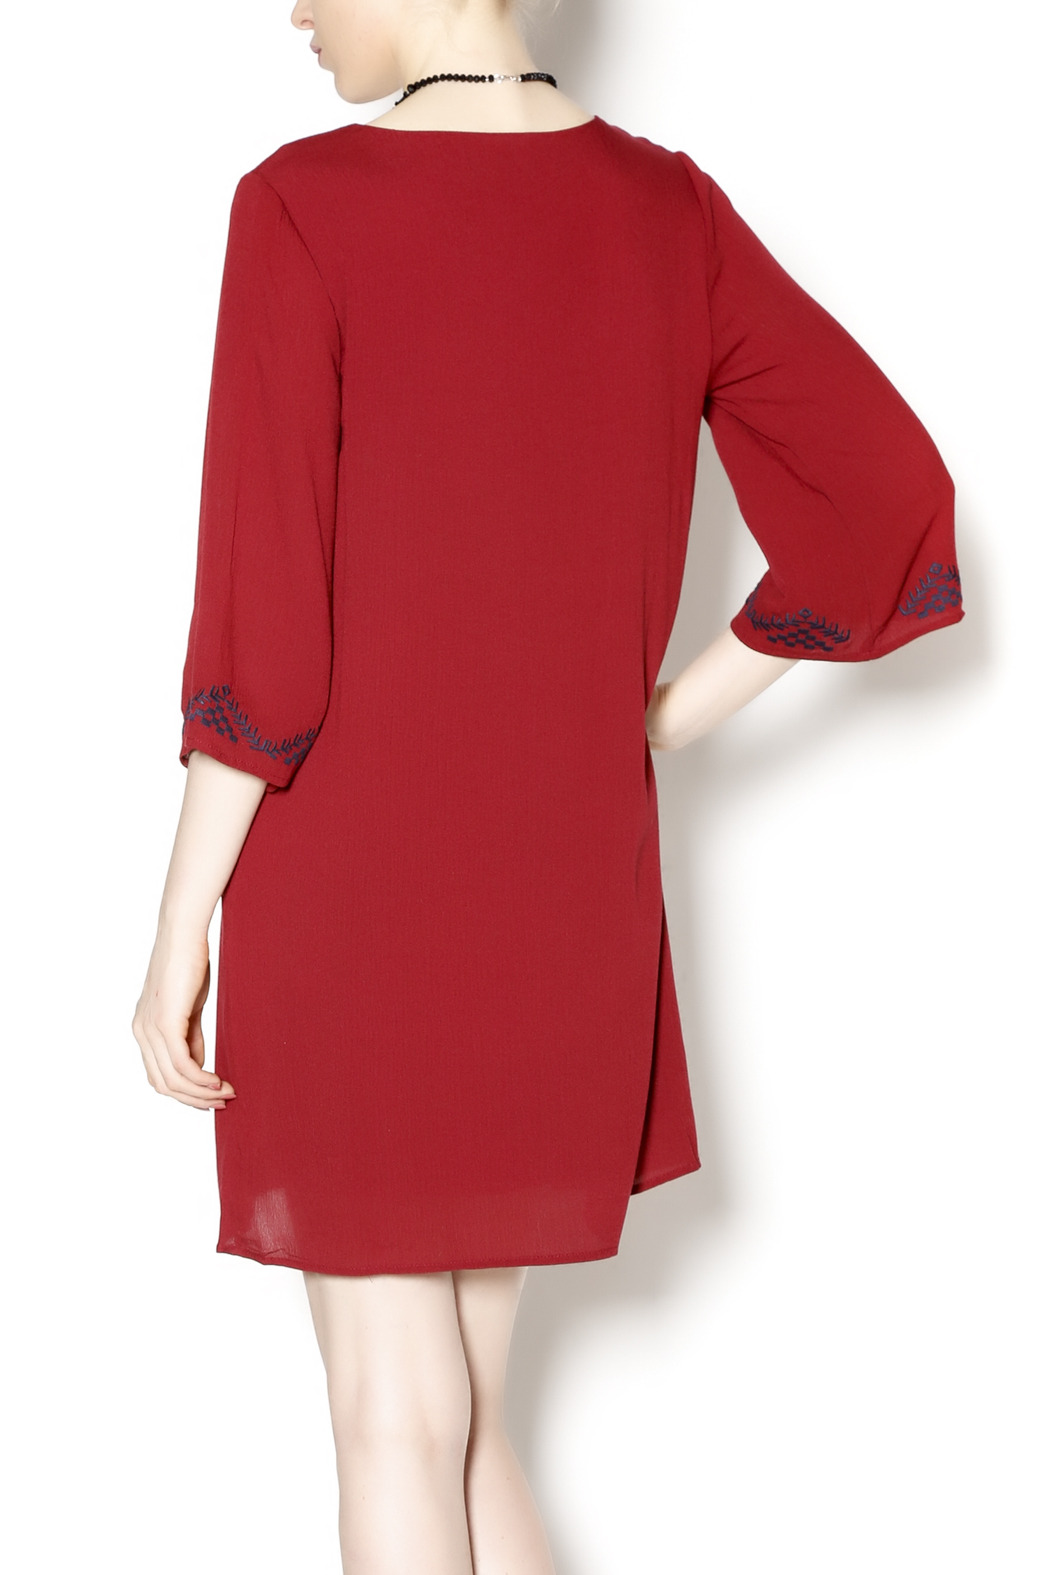 Final Touch Embroidered Red Gauze Dress - Back Cropped Image